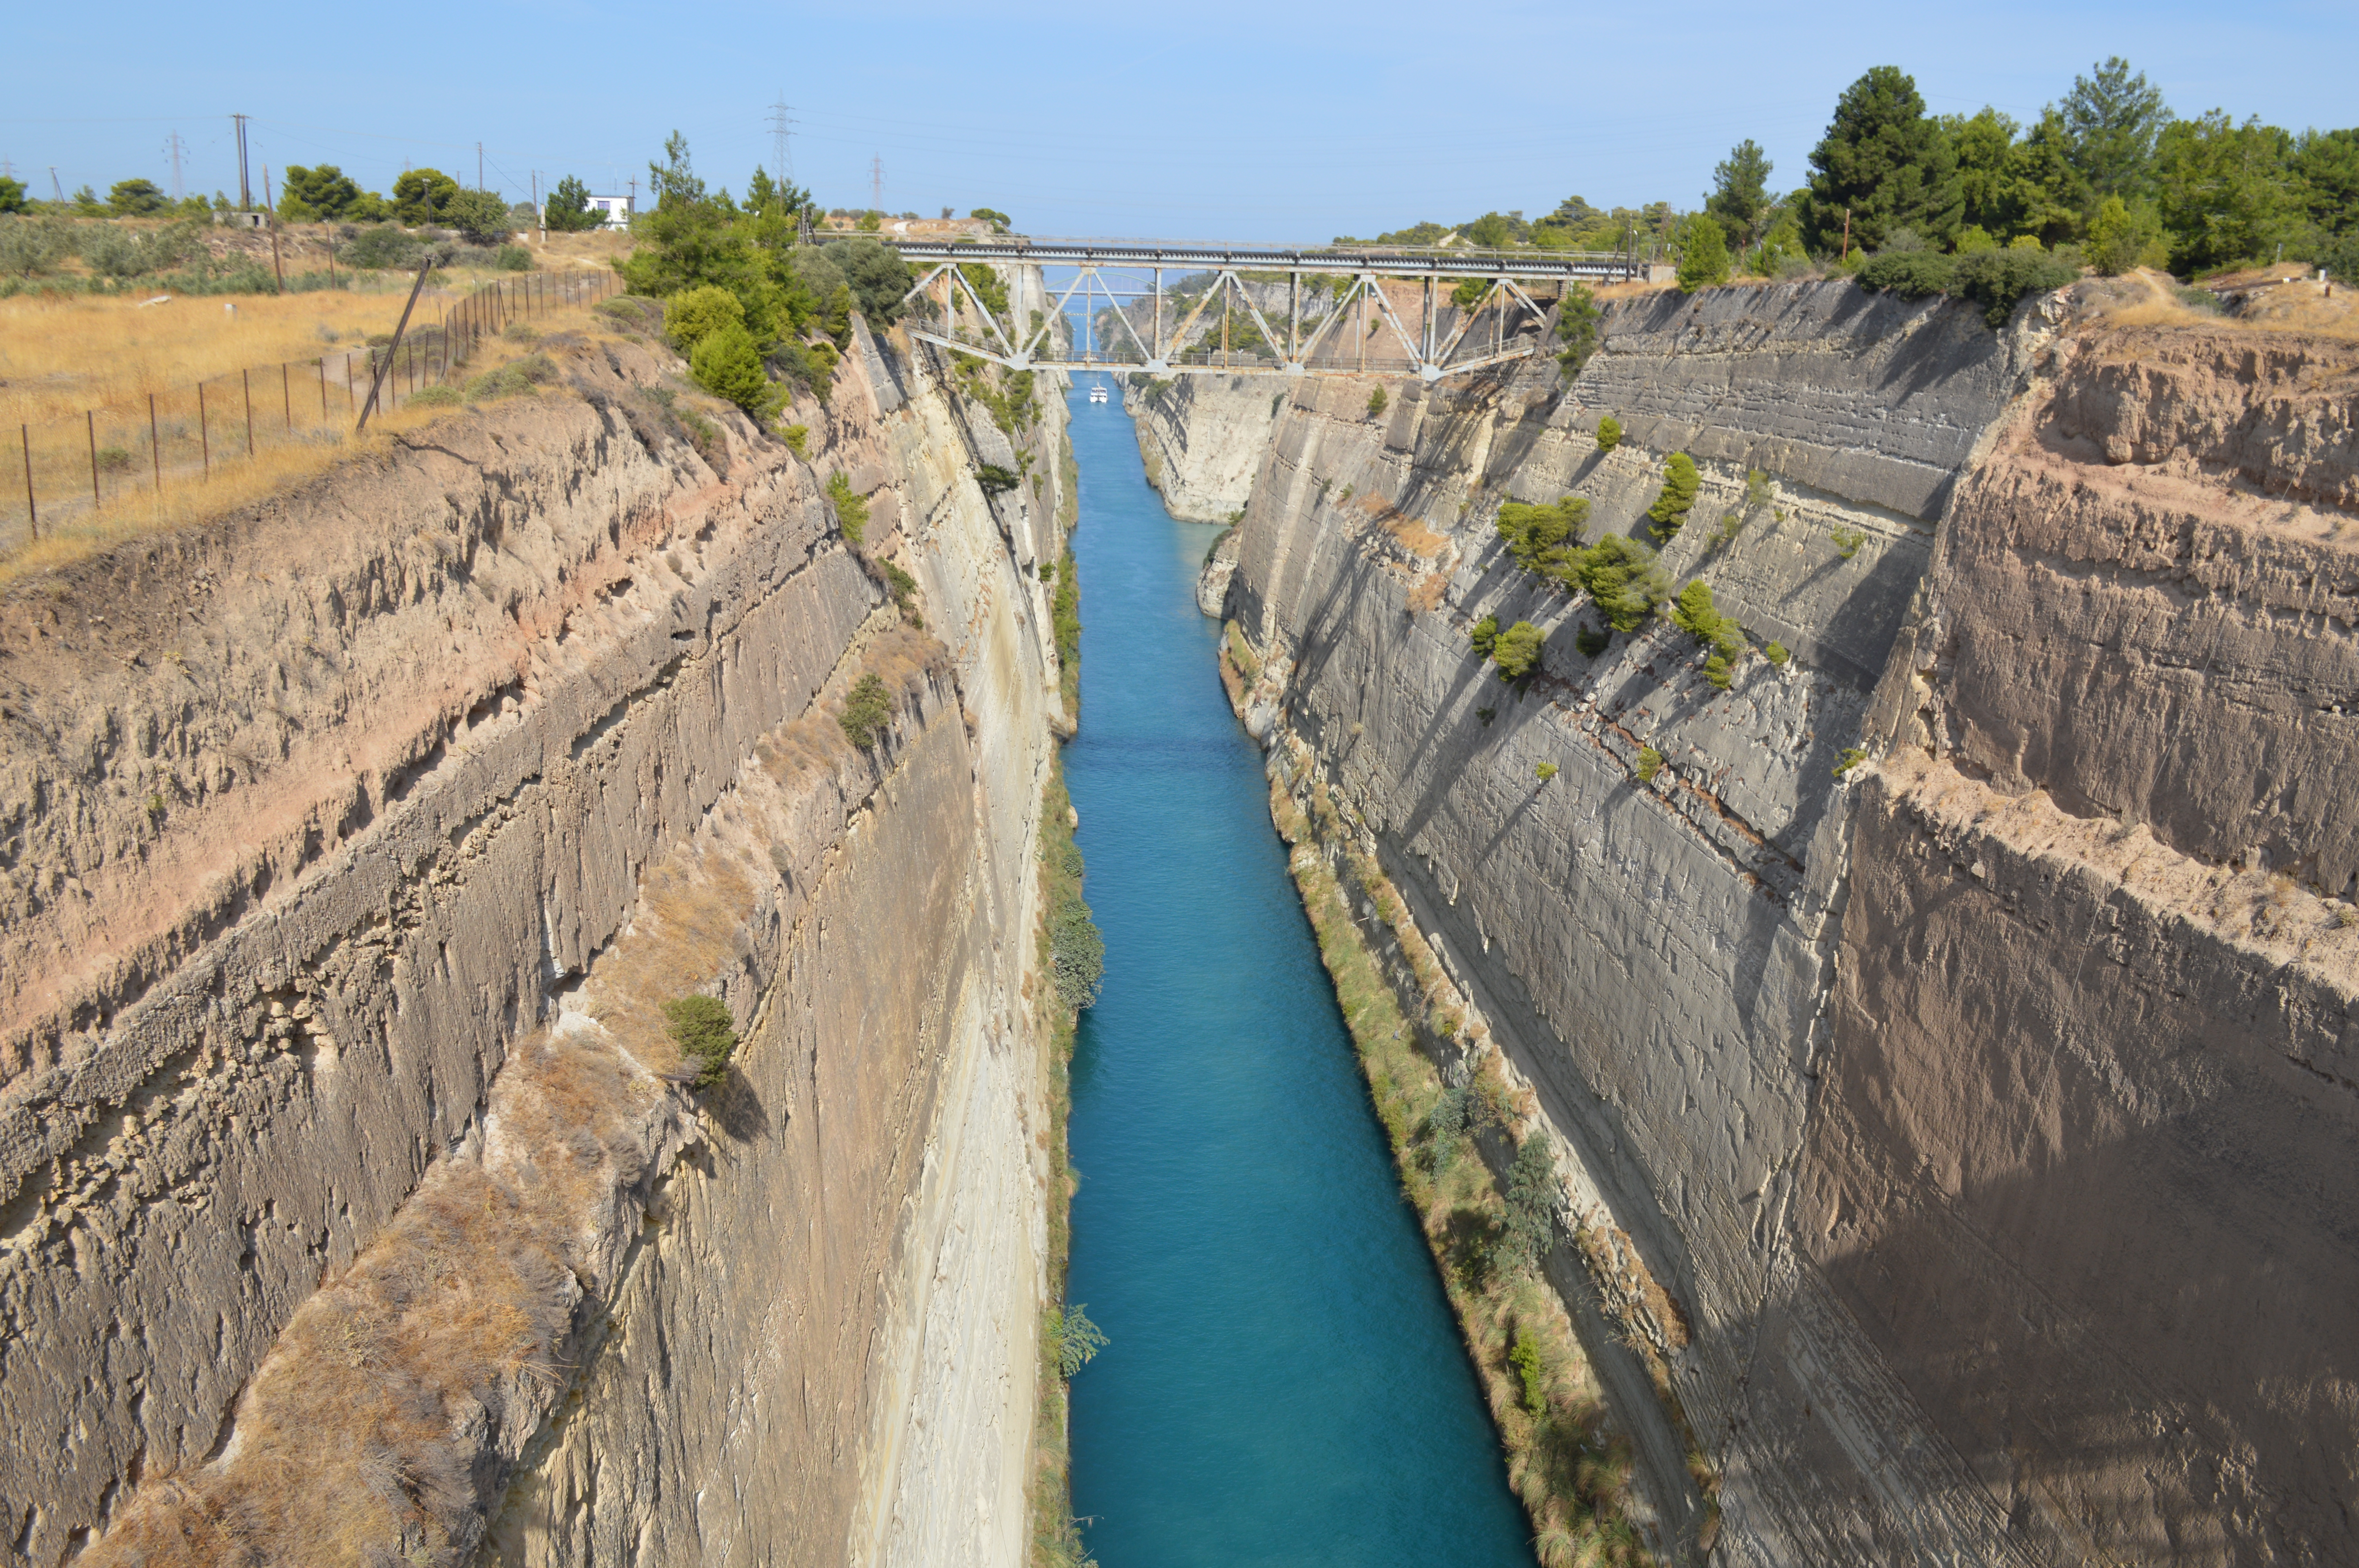 The Peloponnese, the Corinth Canal, and the Rio-Antirrio ...